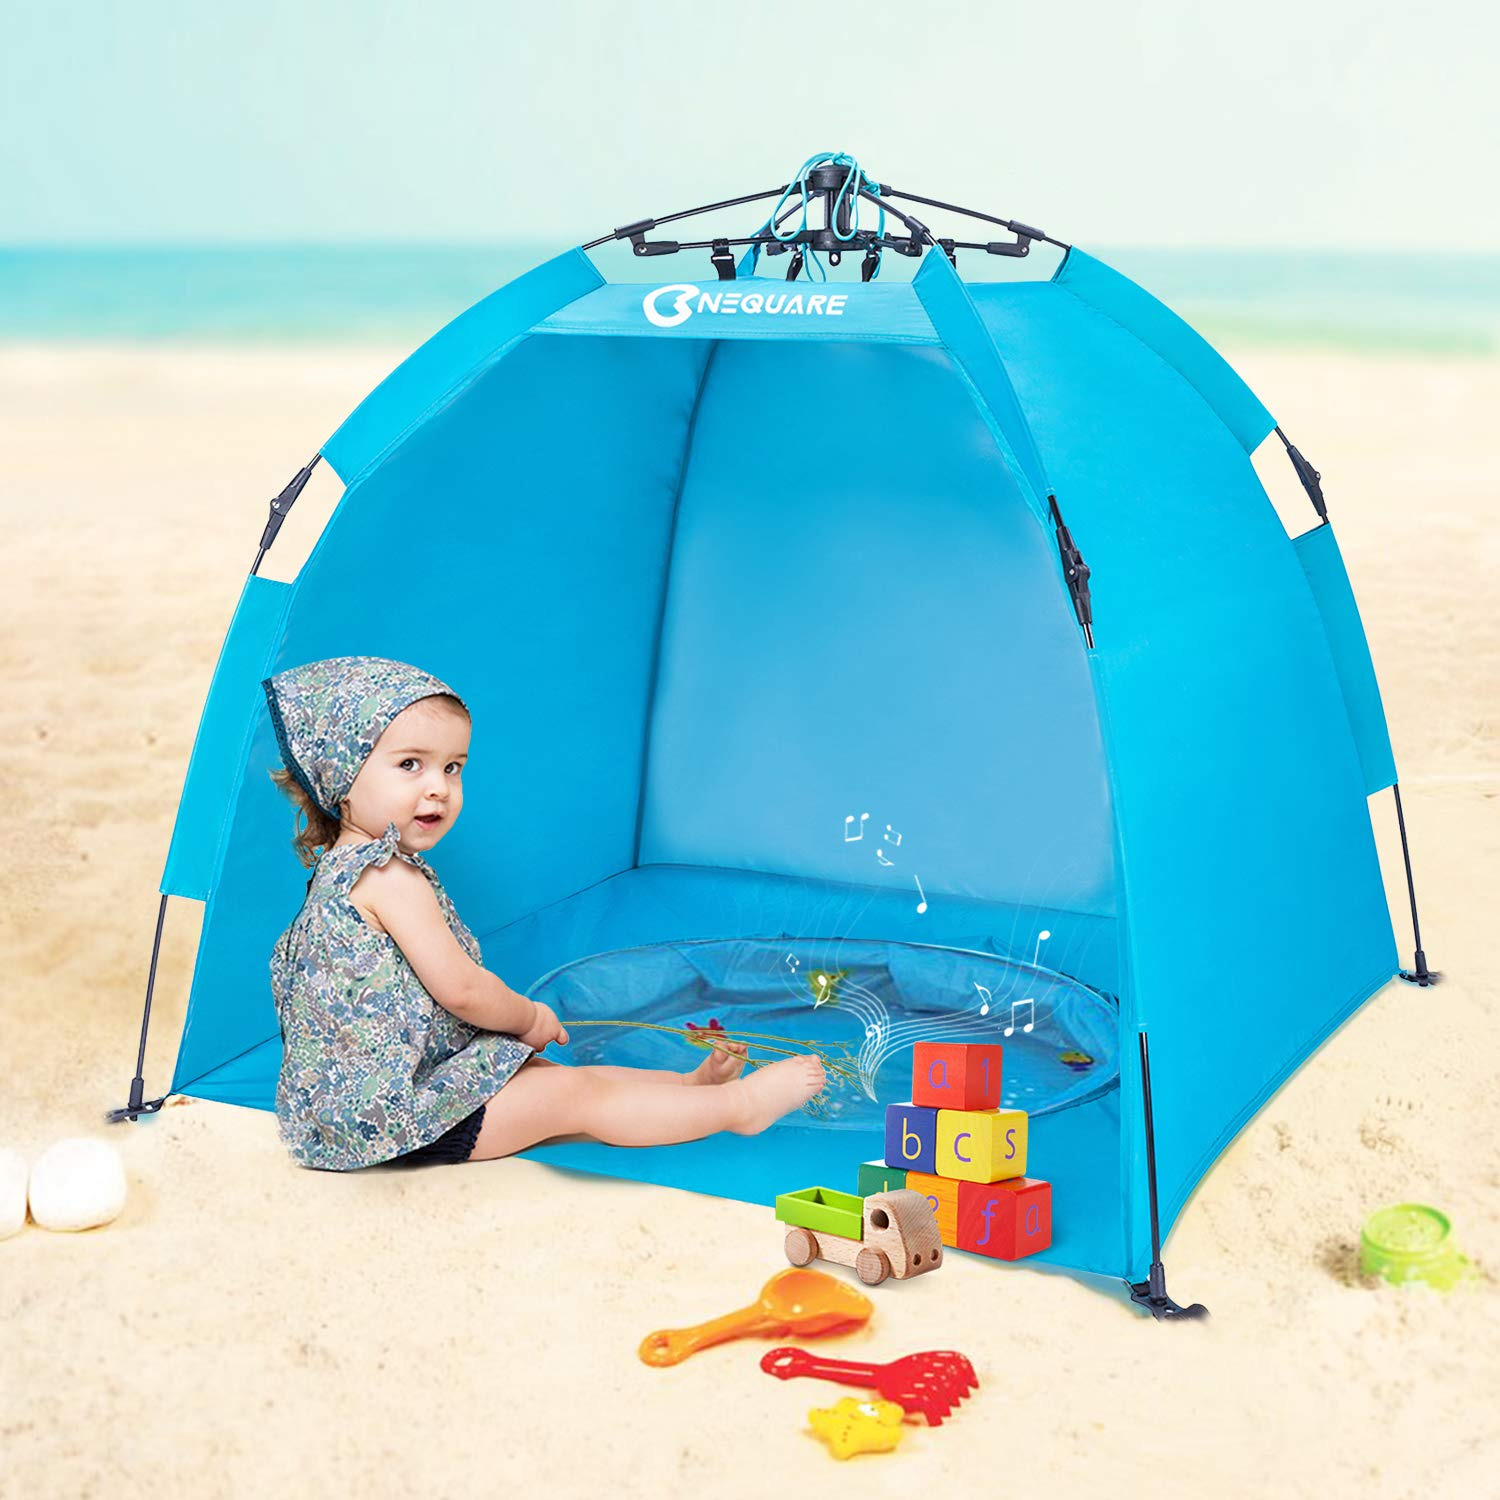 NEQUARE Baby Beach Tent, Automatic Instant Baby Tent and Portable Beach Tent Umbrella Outdoor Sun Shelter with Carrying Bag, 4 Pegs, Anti-UV 50 Protect Child from The Sun, Waterproof Windproof, Blue by NEQUARE